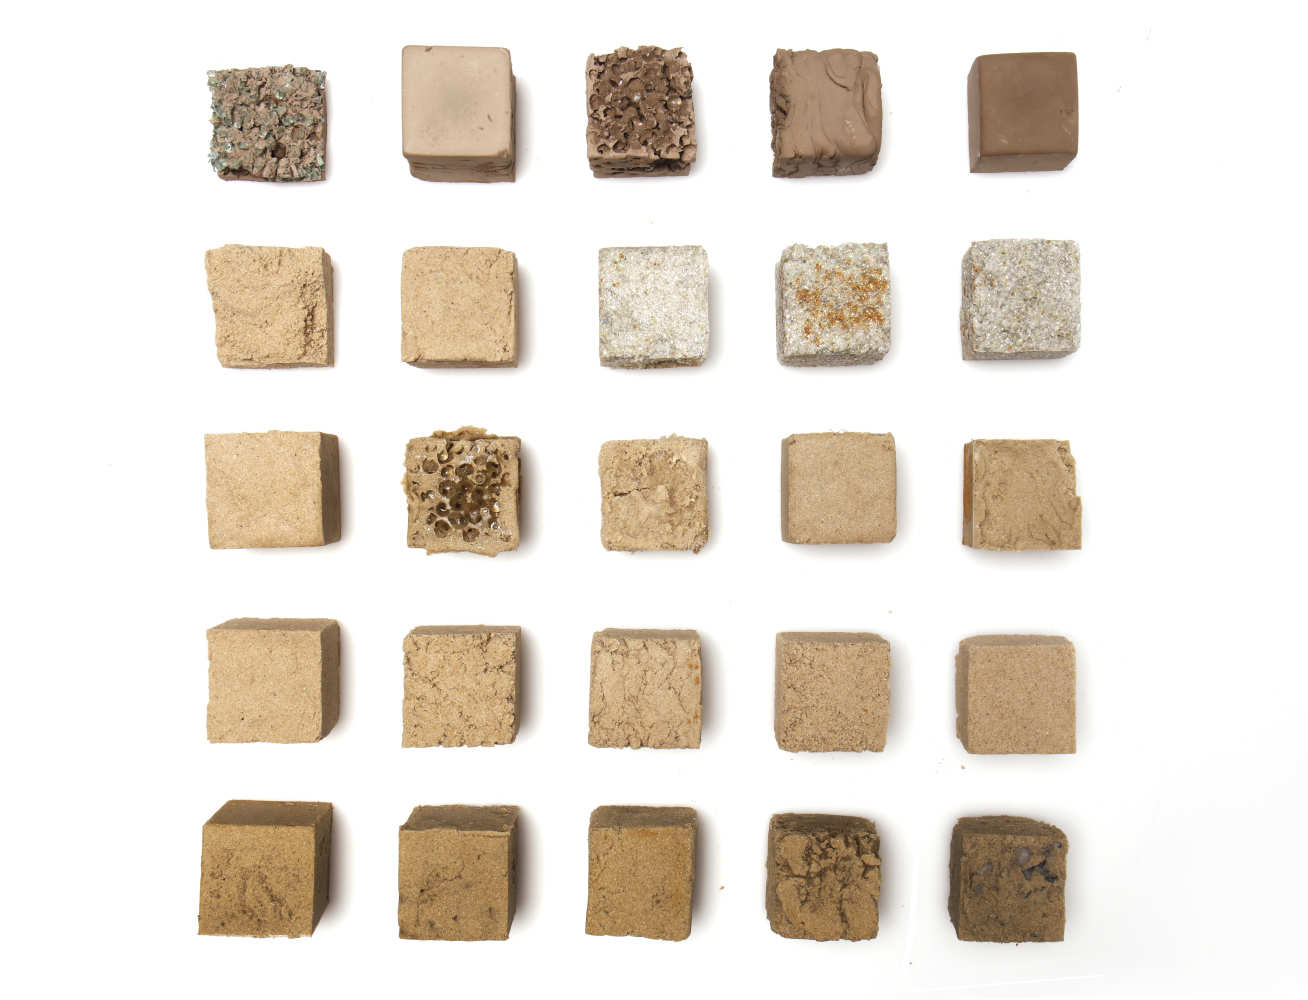 Finite are making a concrete-like material from desert sand